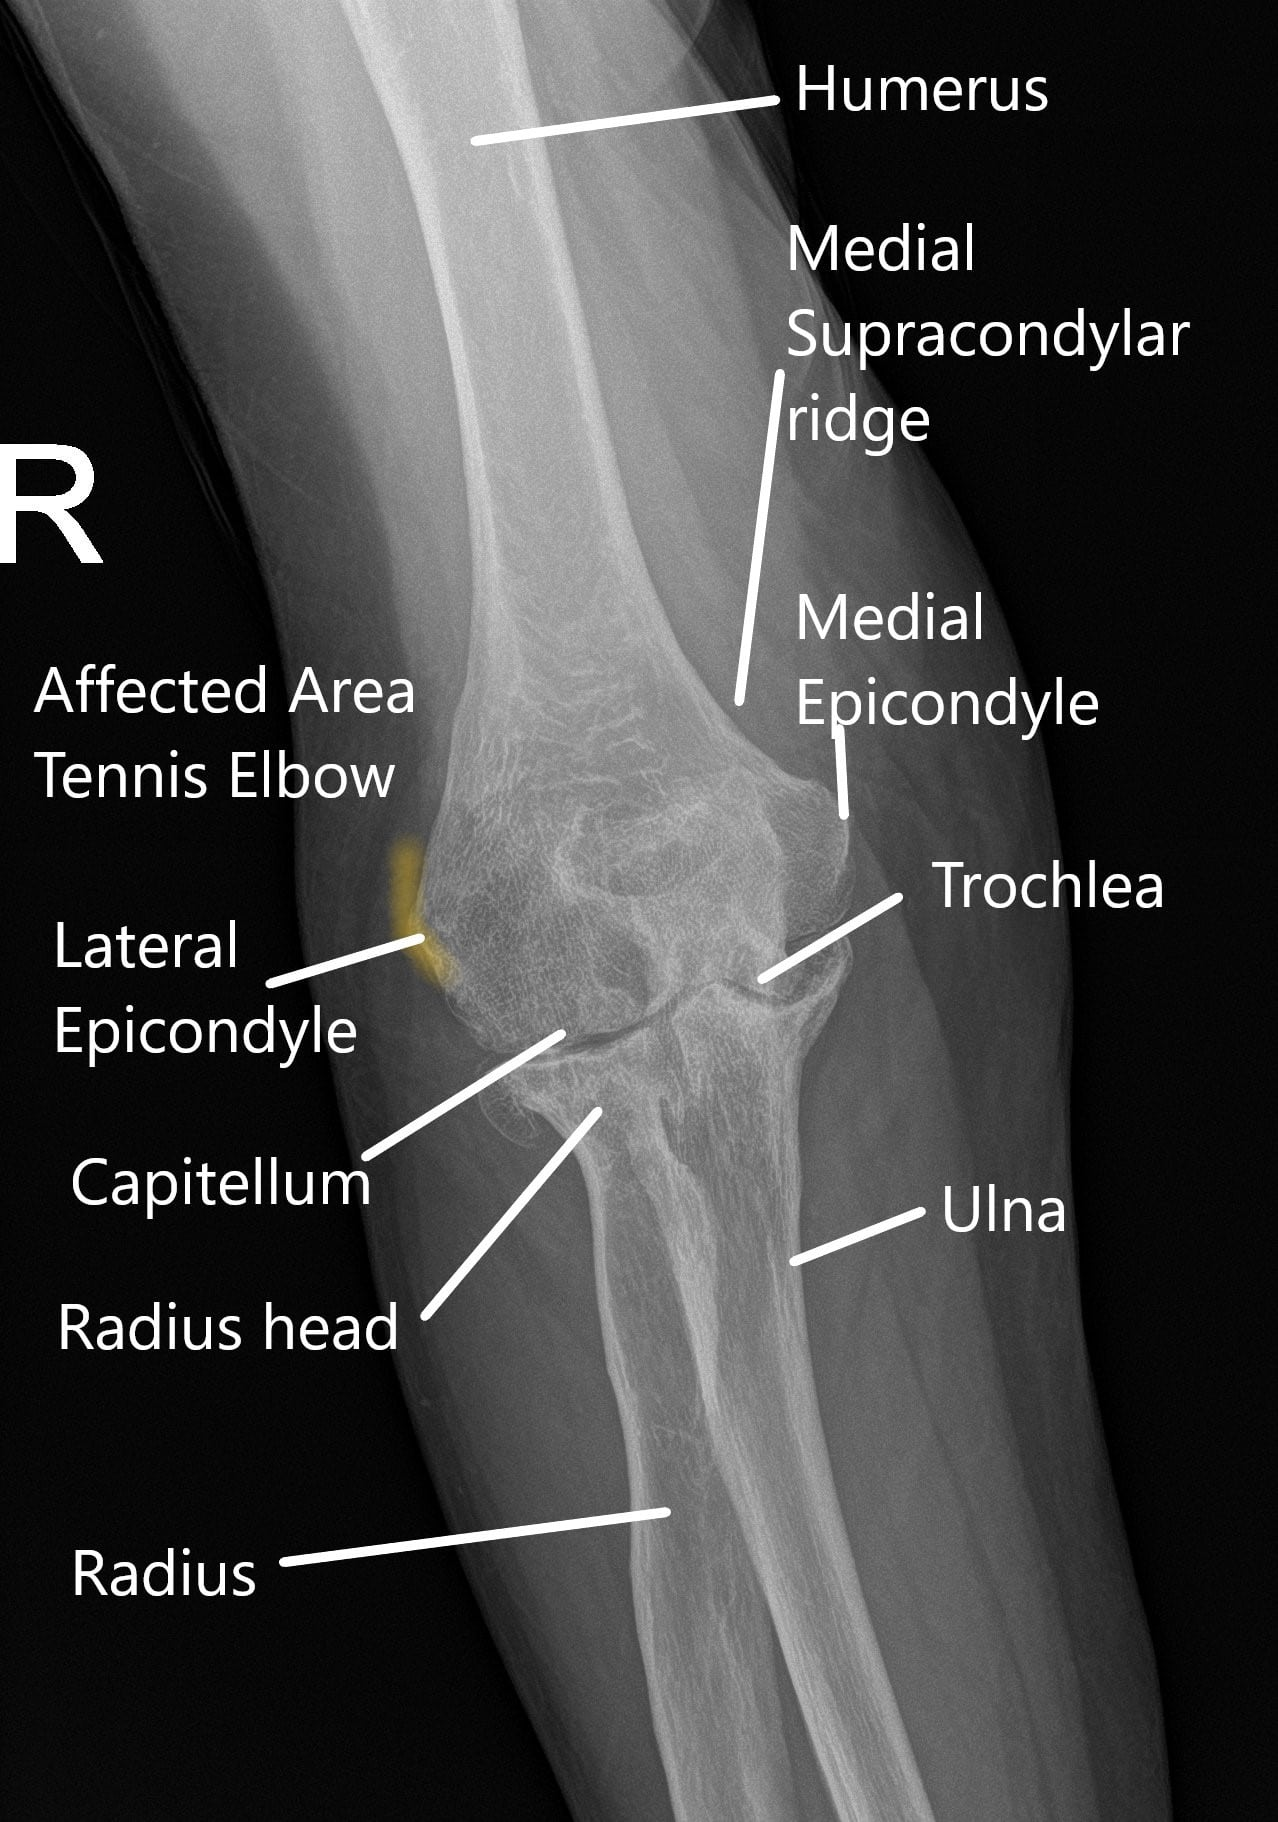 X-ray of the elbow in the AP view.